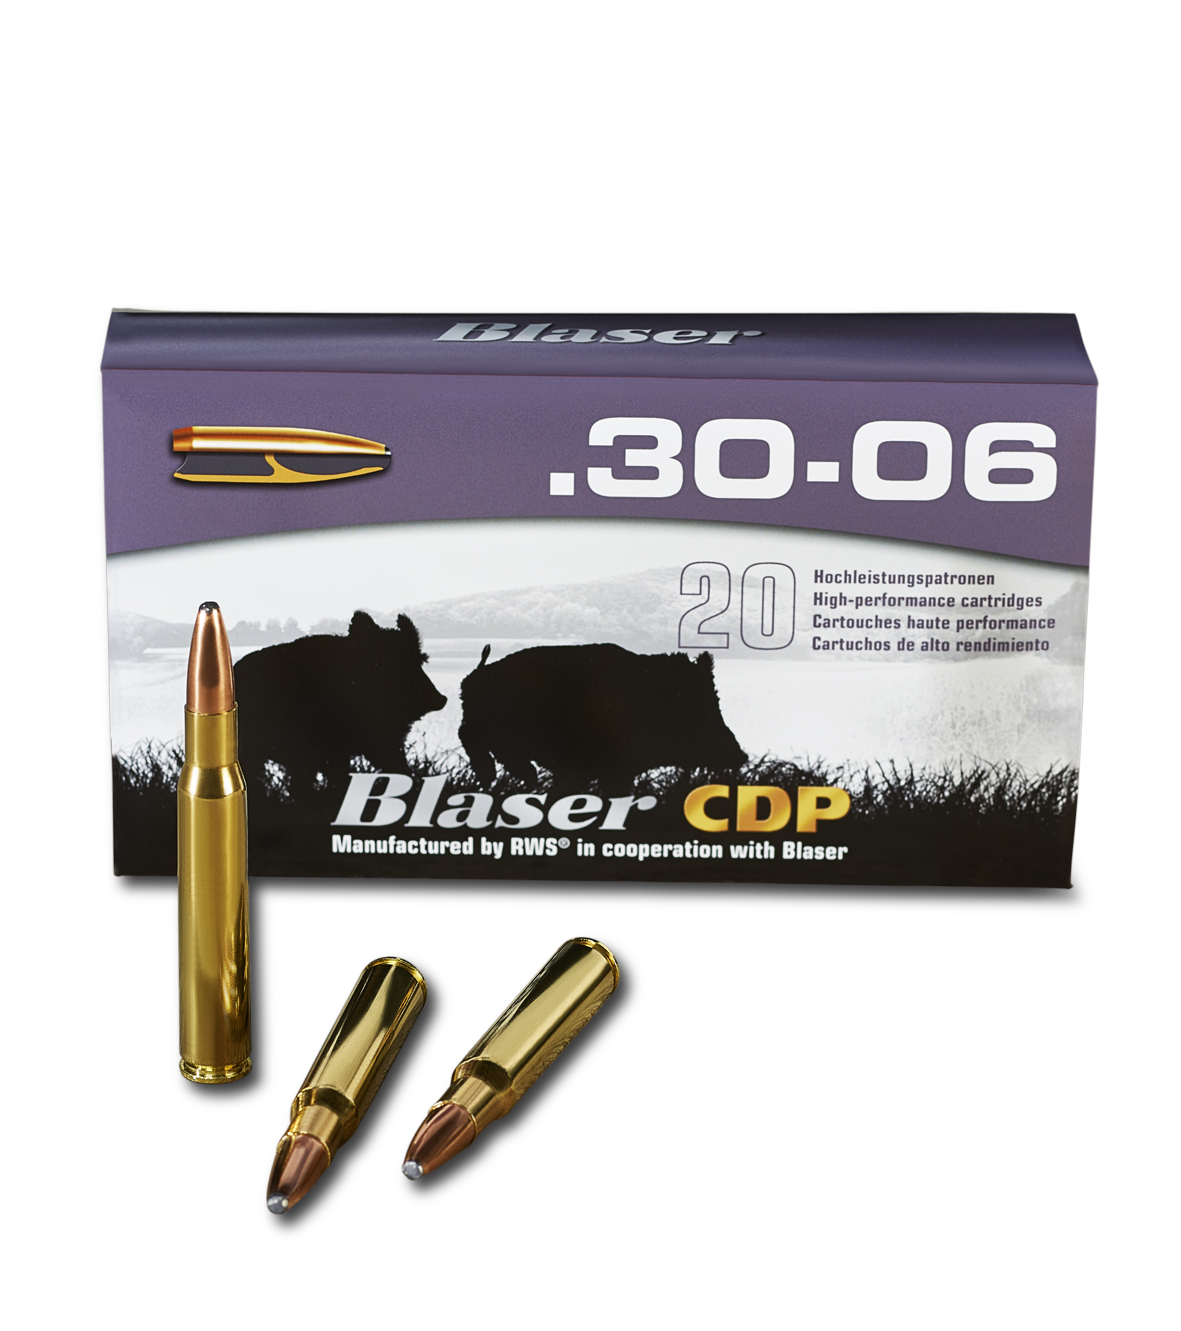 Blaser Munition Controlled Deformation Process .30-06 Verpackung